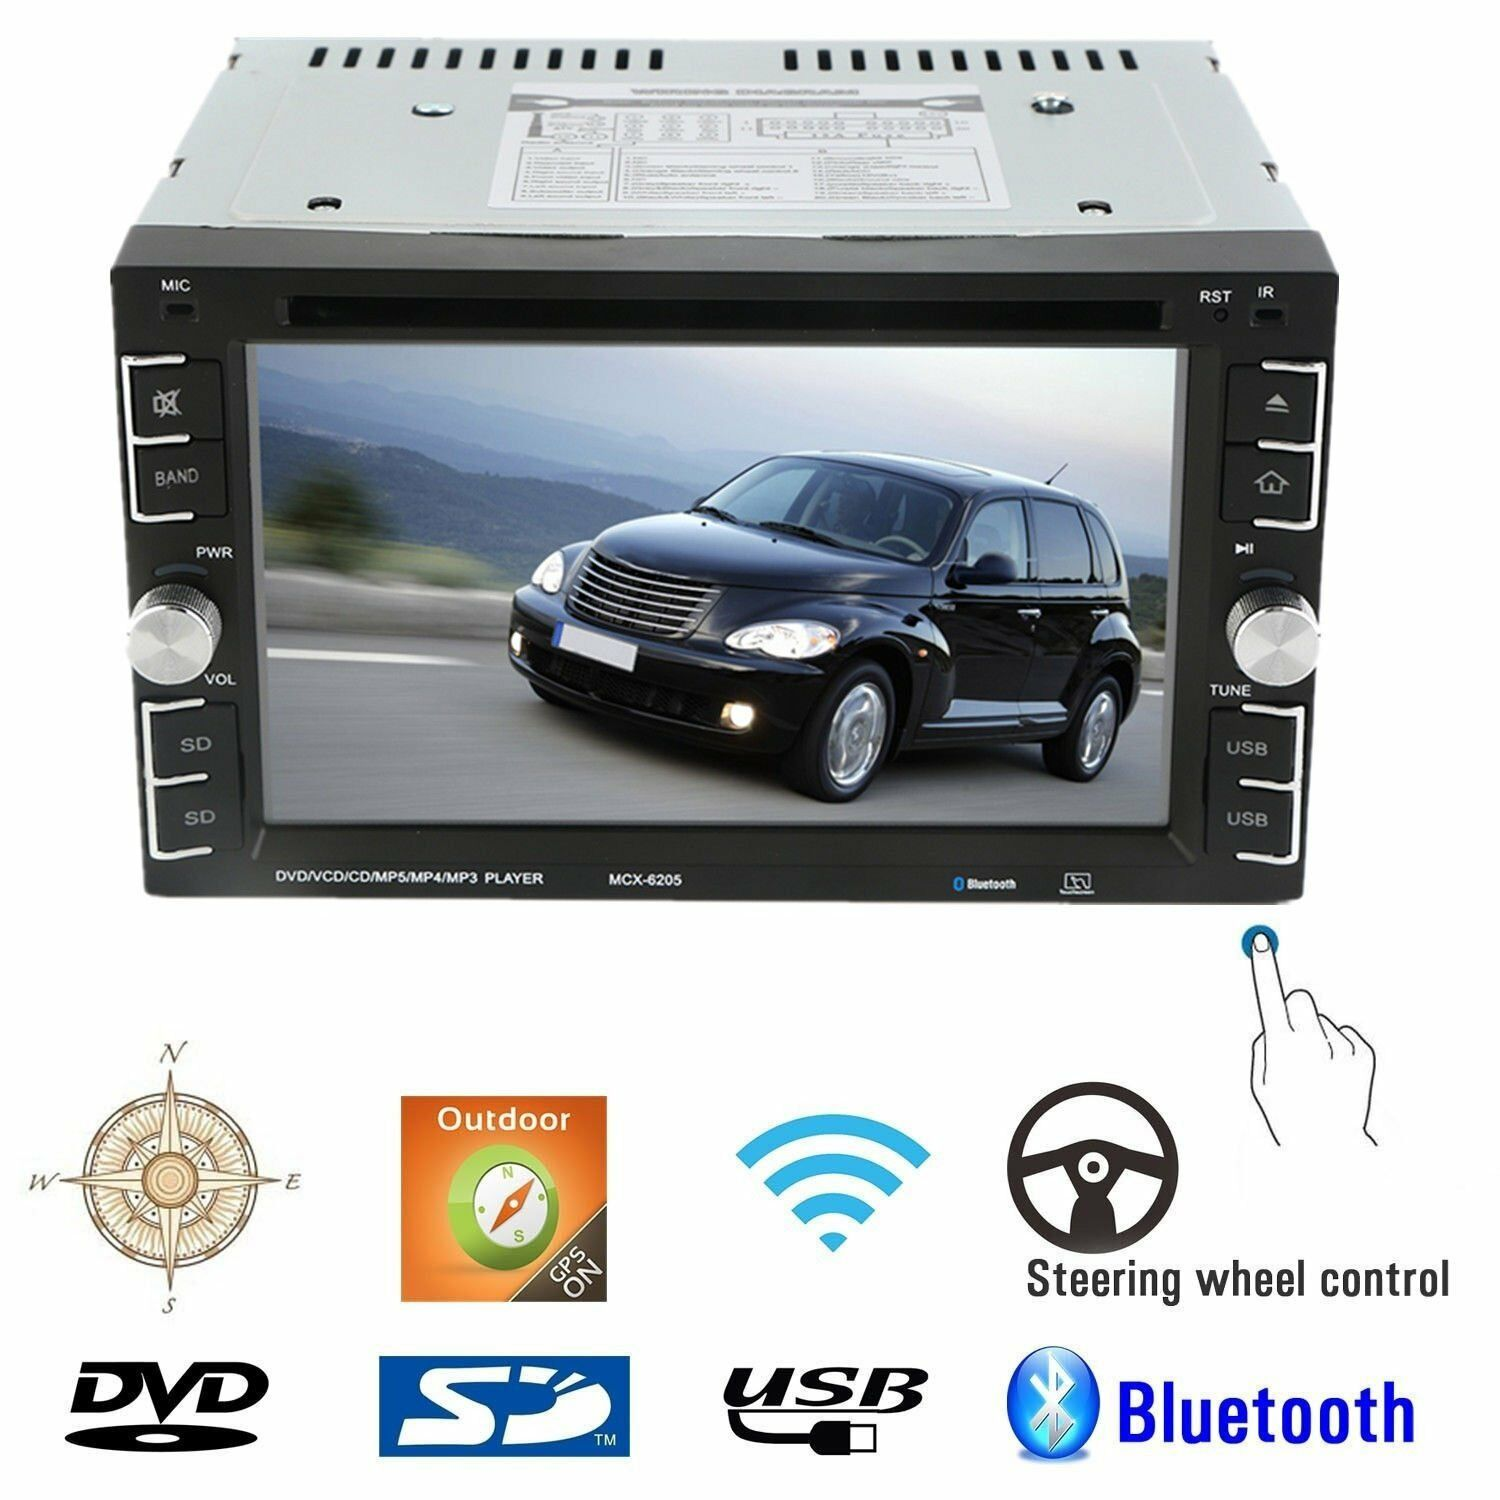 autoradio mit gps navigation navi bluetooth touchscreen dvd cd usb sd mp3 2din l eur 64 20. Black Bedroom Furniture Sets. Home Design Ideas